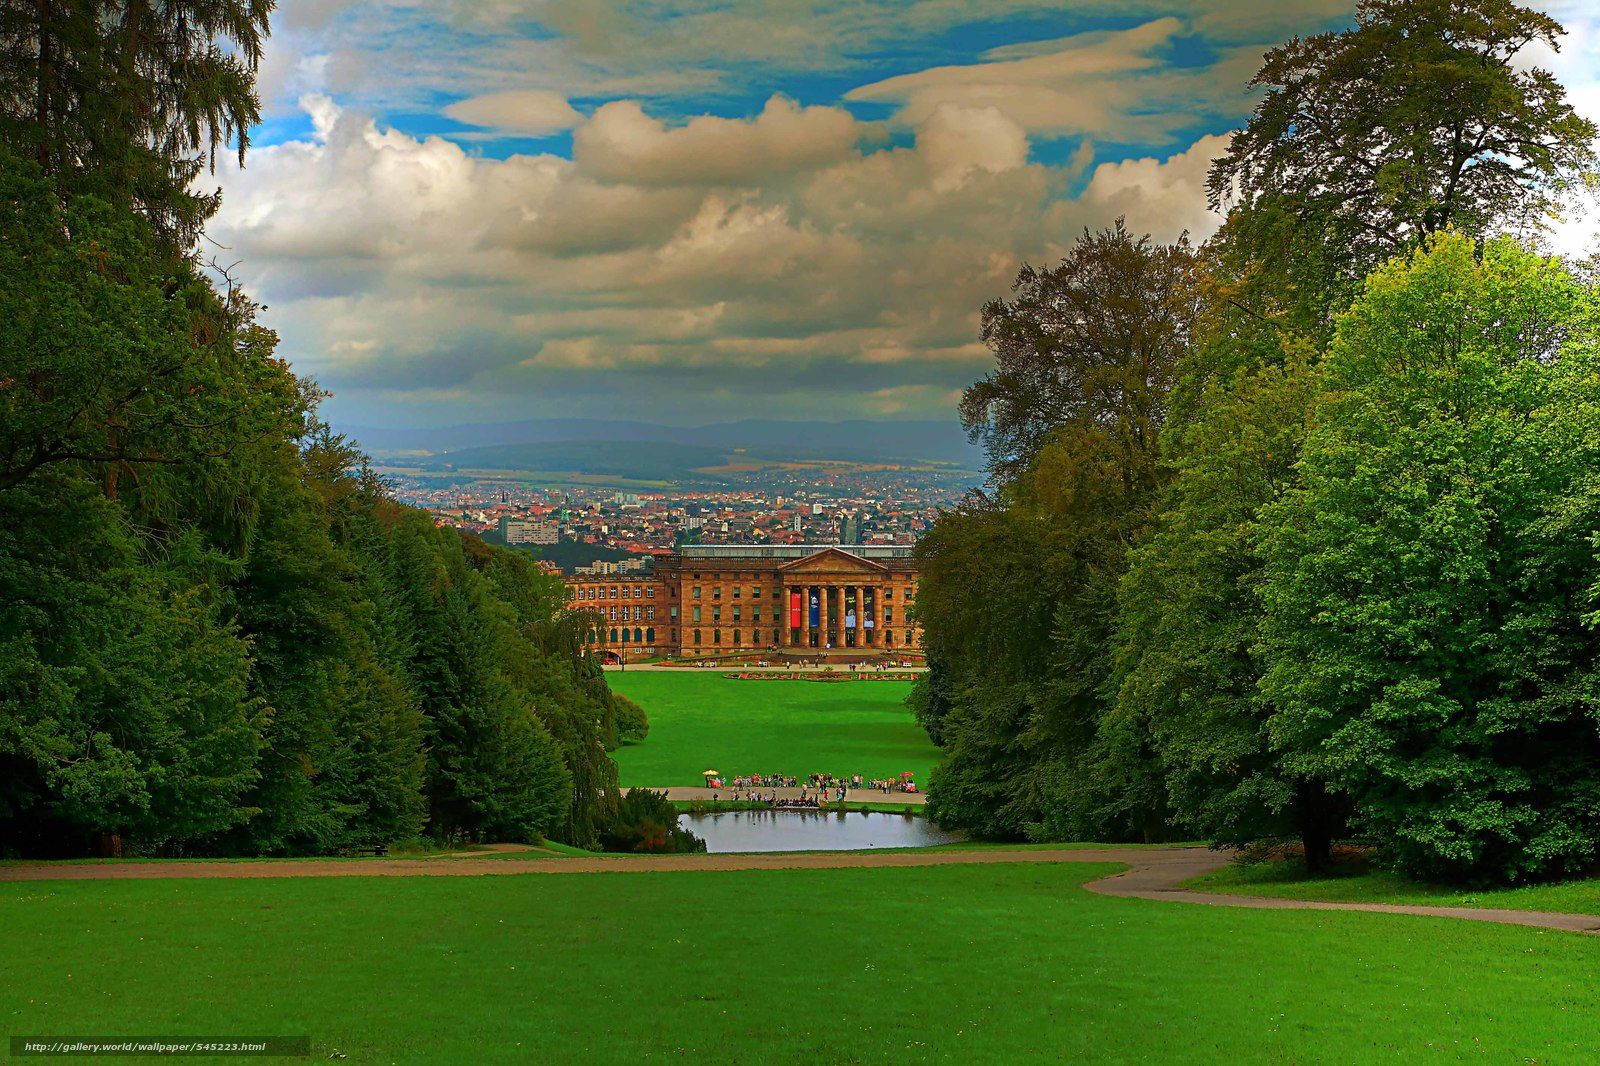 download wallpaper schlosspark kassel germany landscape free desktop wallpaper in the. Black Bedroom Furniture Sets. Home Design Ideas